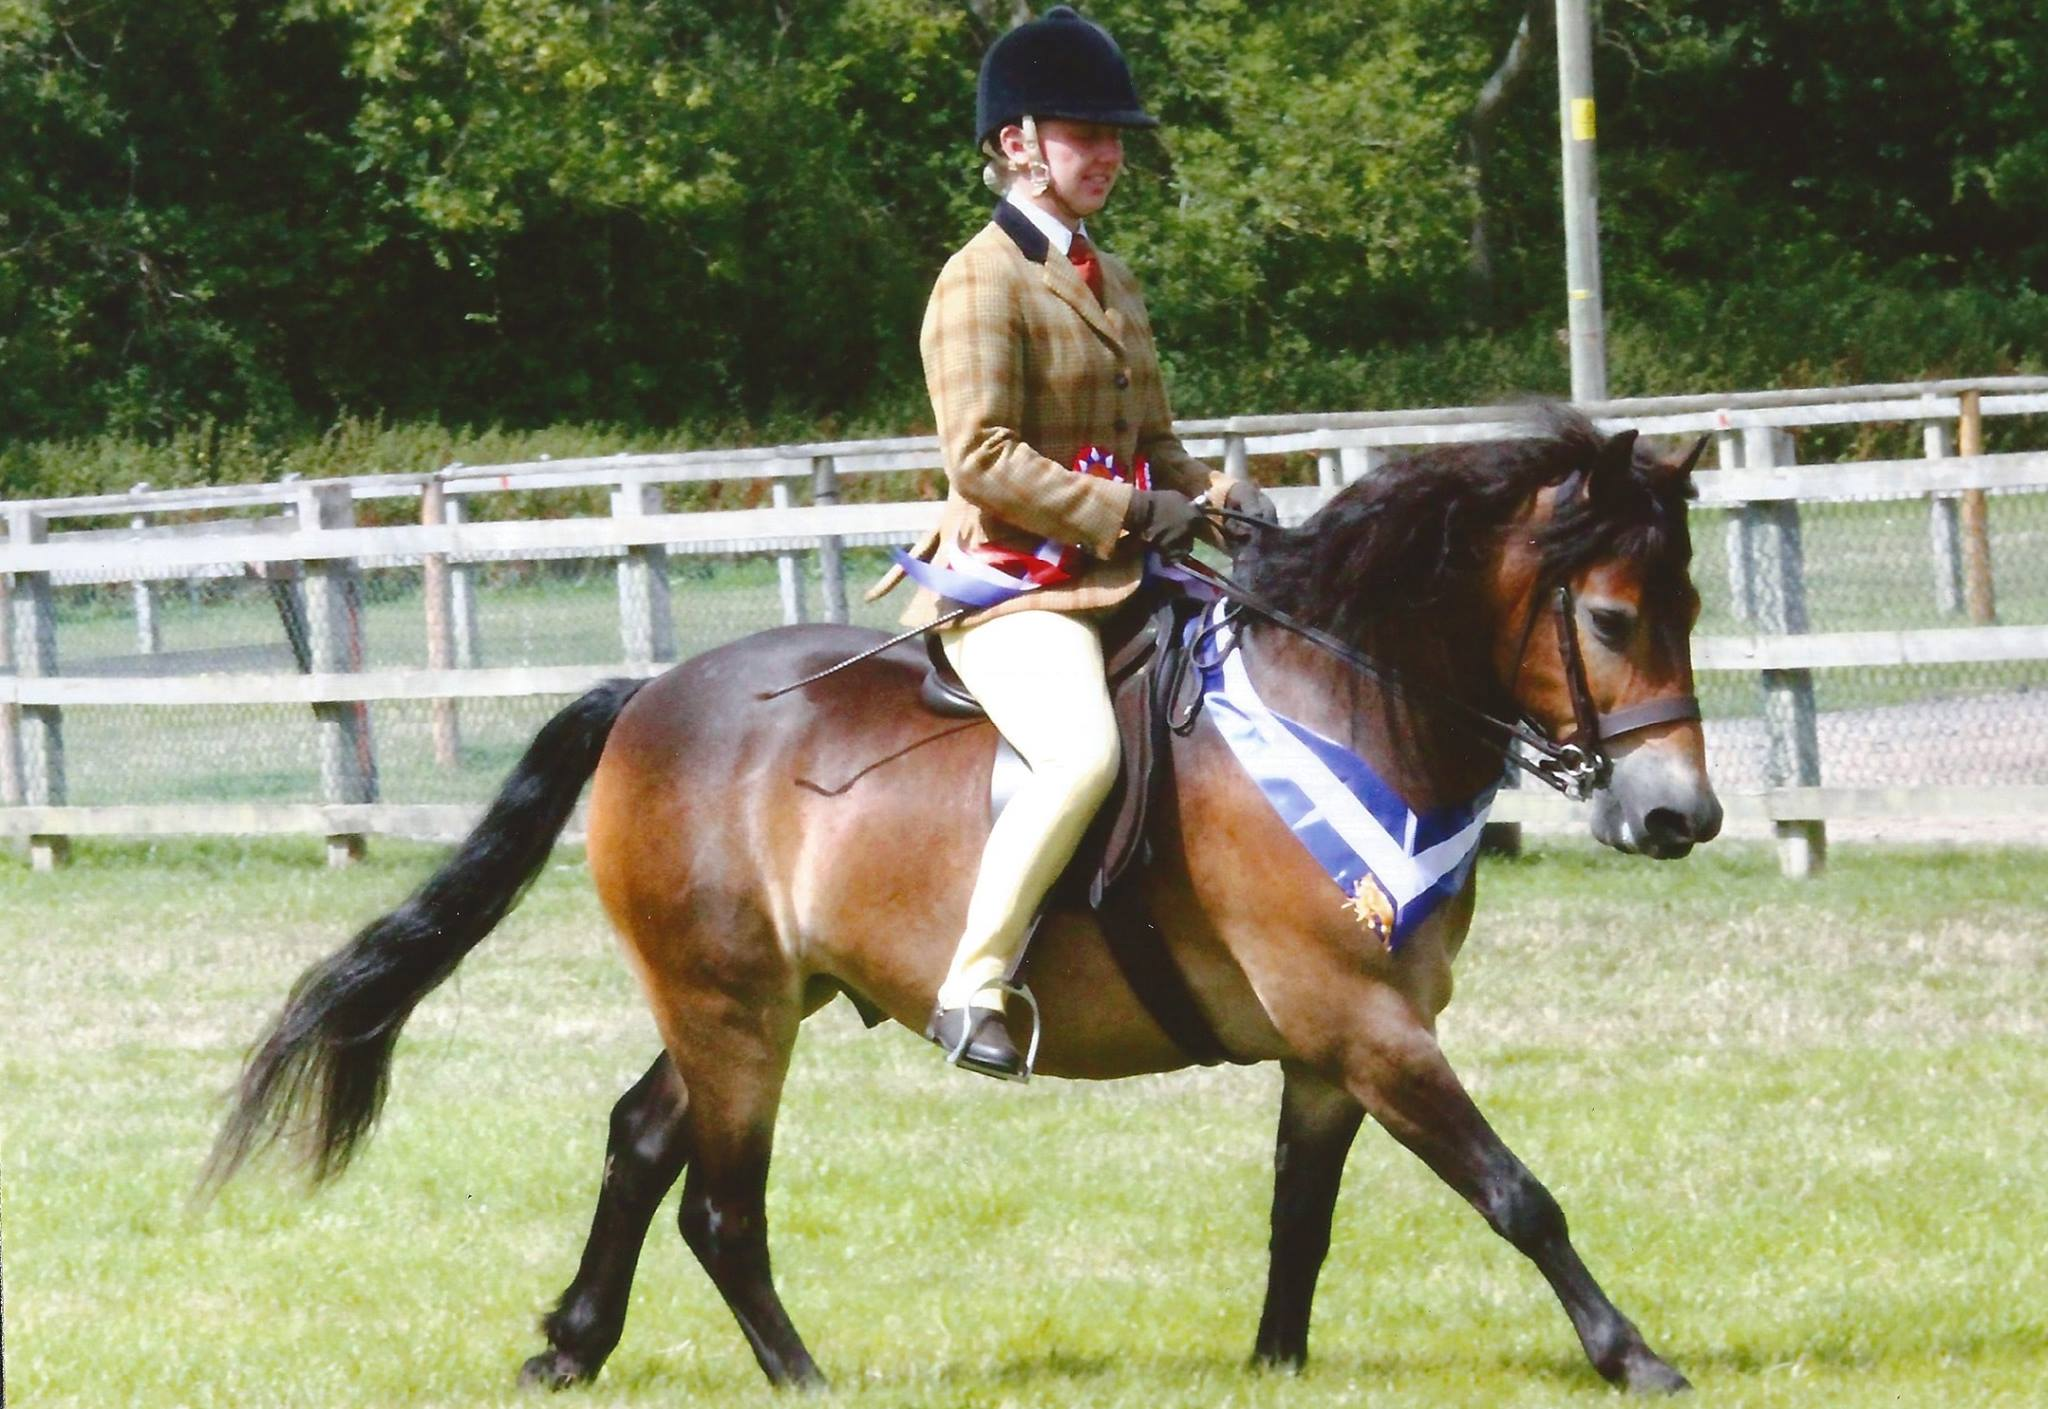 Sweet E M  M Ridden Dartmoorexmoorshetland  Whos Qualified With Likable Moonpenny Aquarius  Elizabeth Etchells With Breathtaking Large Garden Centres Also Horsforth Gardening Services In Addition Garden Wall Art Metal And Seddons Garden Machinery As Well As Garden Sheds In Nottingham Additionally Covent Garden Beads From Whosqualifiedcouk With   Likable E M  M Ridden Dartmoorexmoorshetland  Whos Qualified With Breathtaking Moonpenny Aquarius  Elizabeth Etchells And Sweet Large Garden Centres Also Horsforth Gardening Services In Addition Garden Wall Art Metal From Whosqualifiedcouk